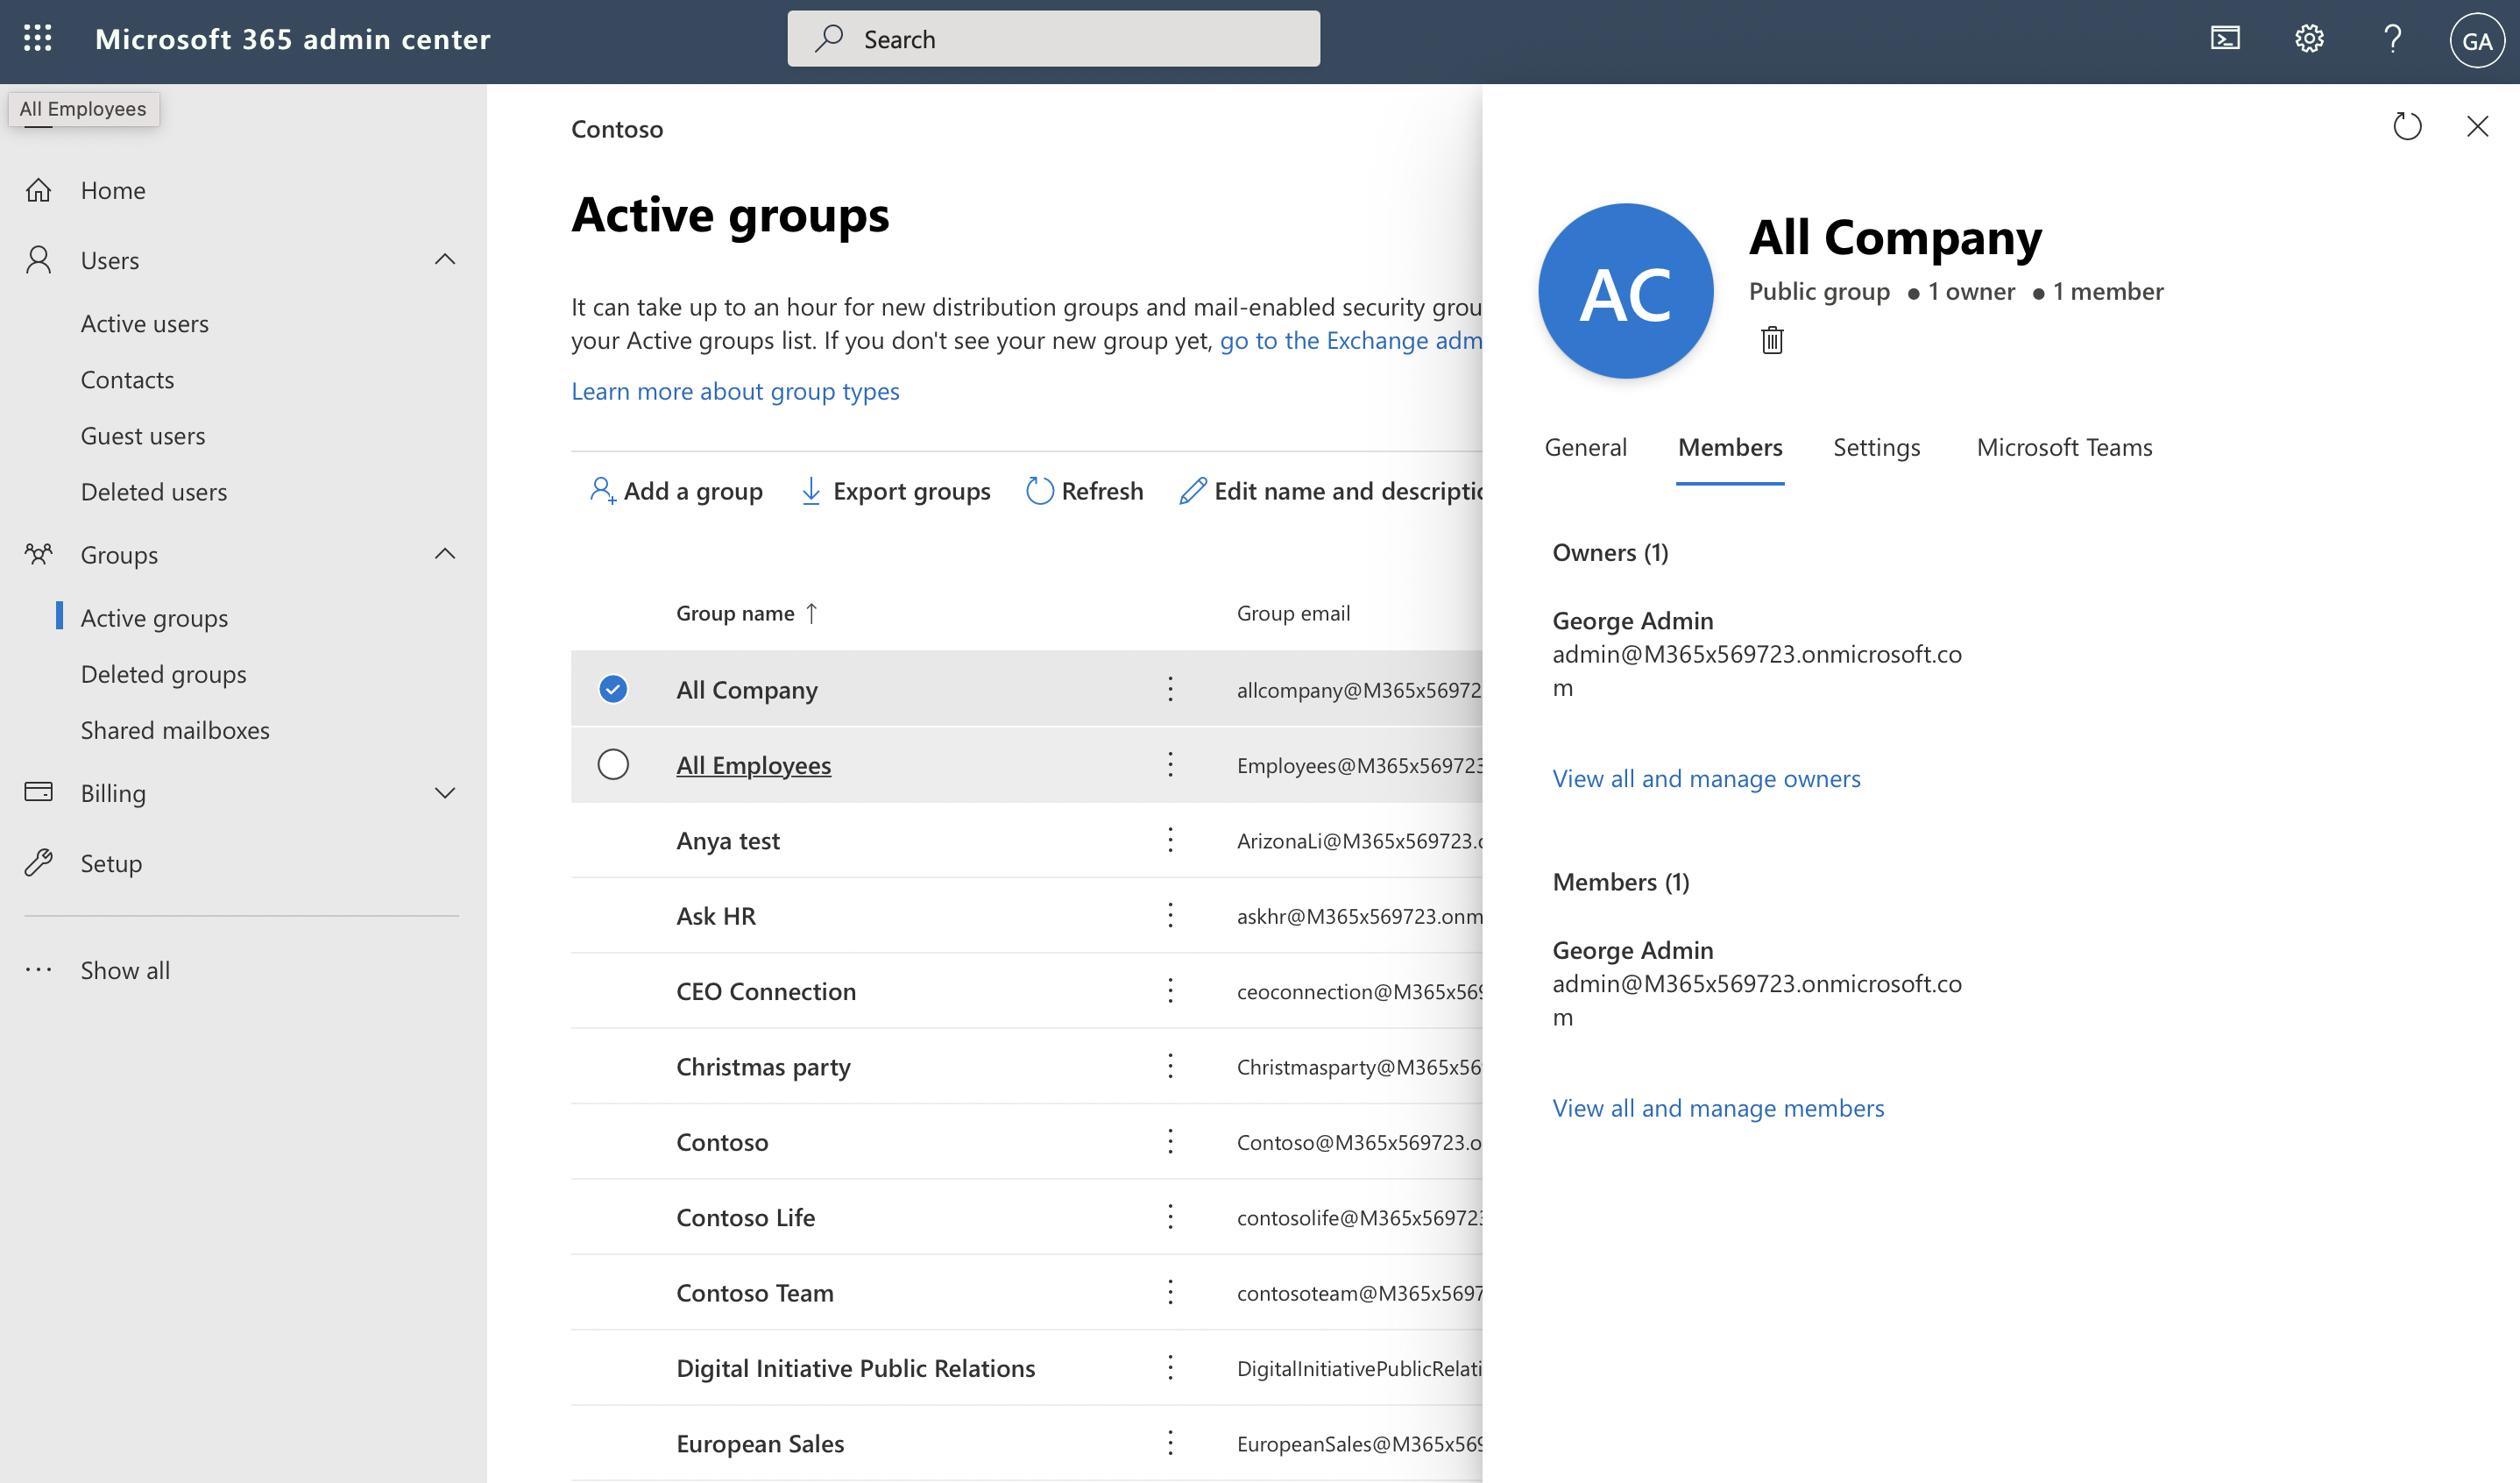 Screenshot of details for a Microsoft 365 group in the admin center.